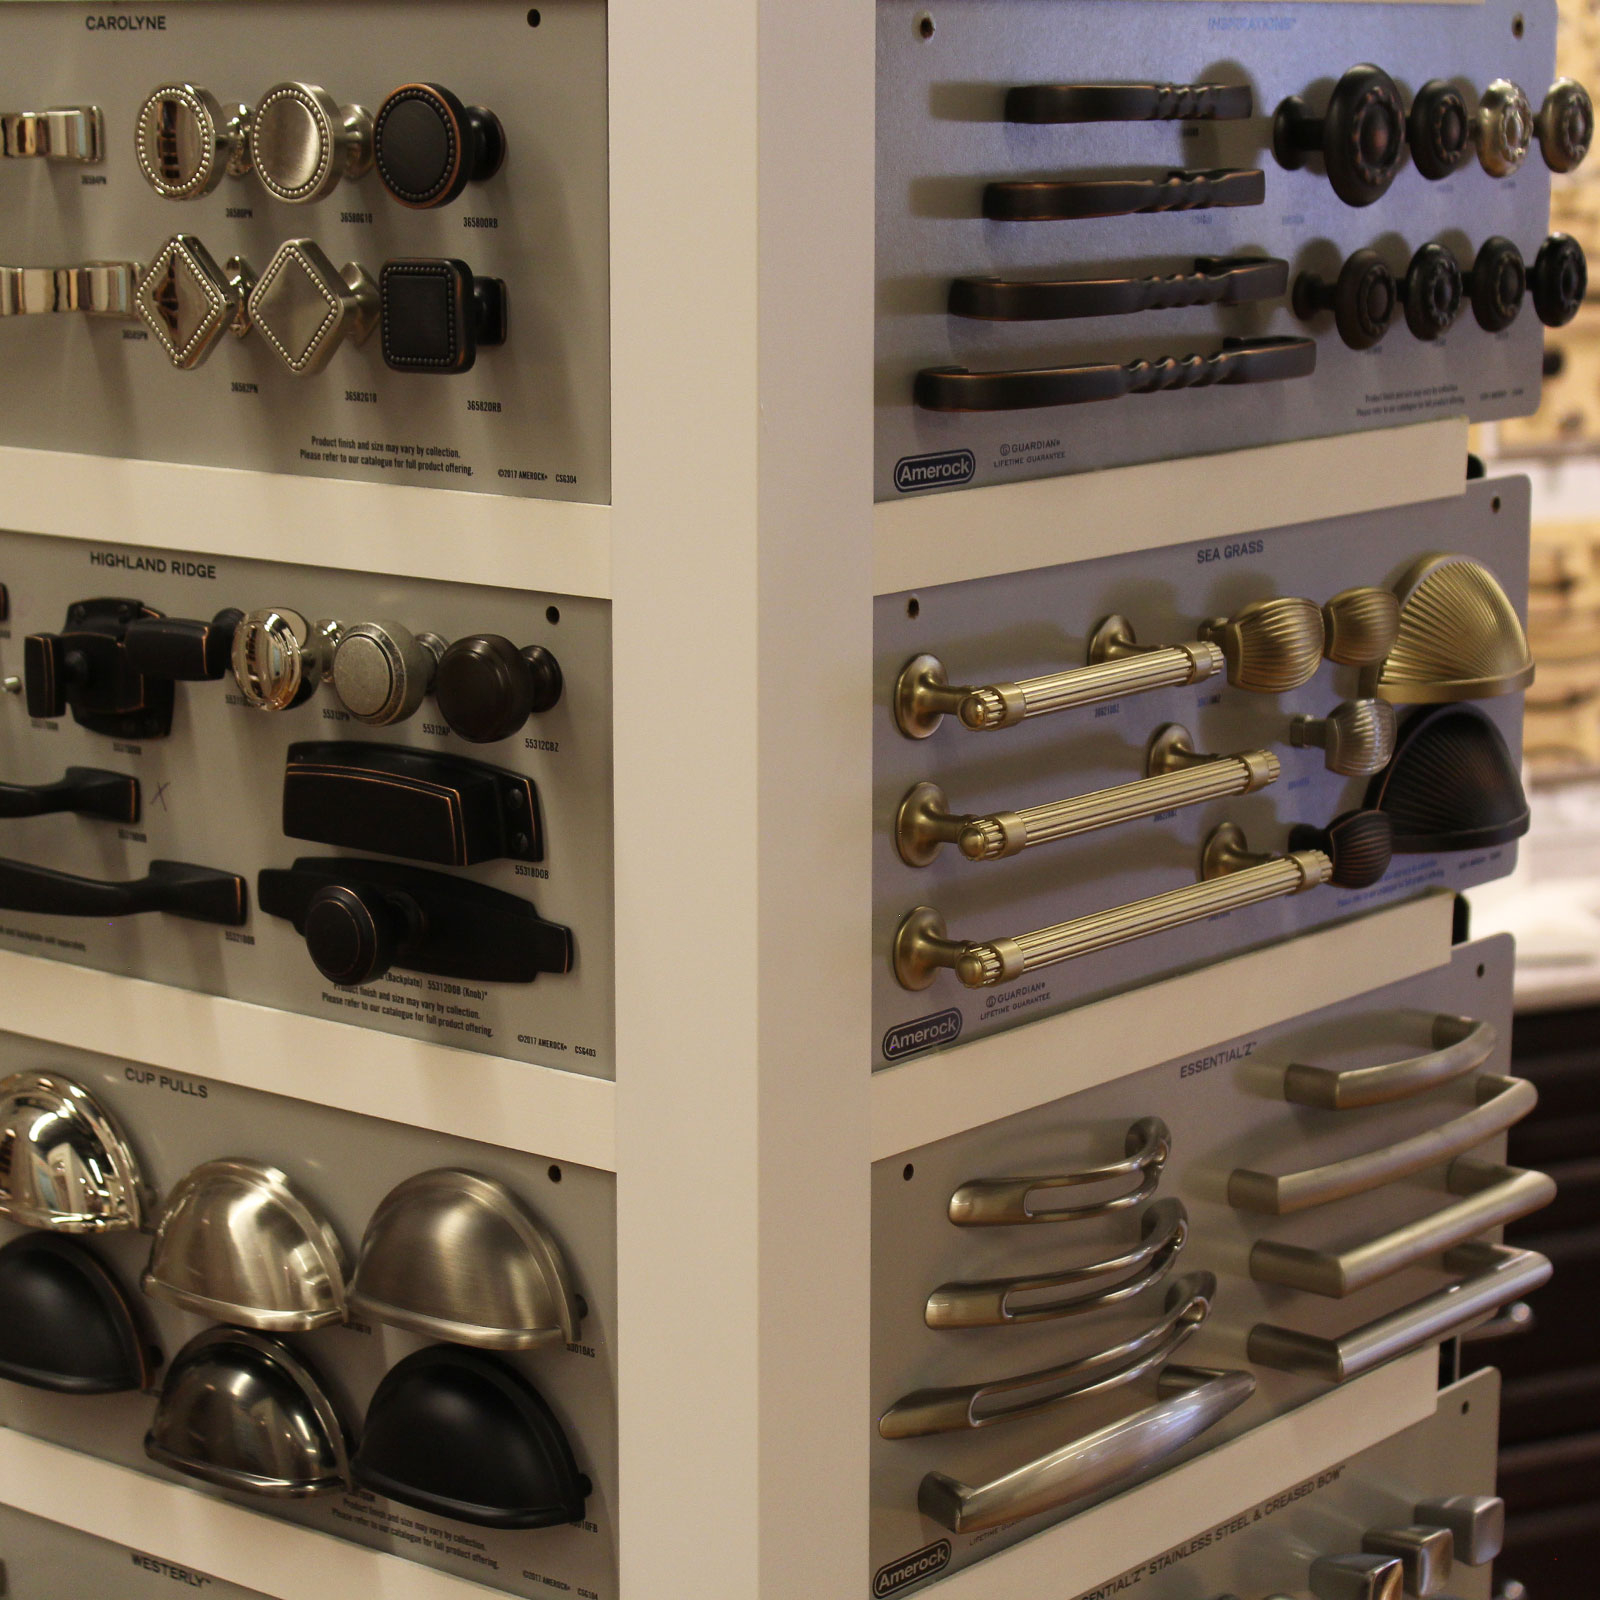 Jackson Kitchen Designs - We have the latest cabinet hardware styles on display for you to choose from